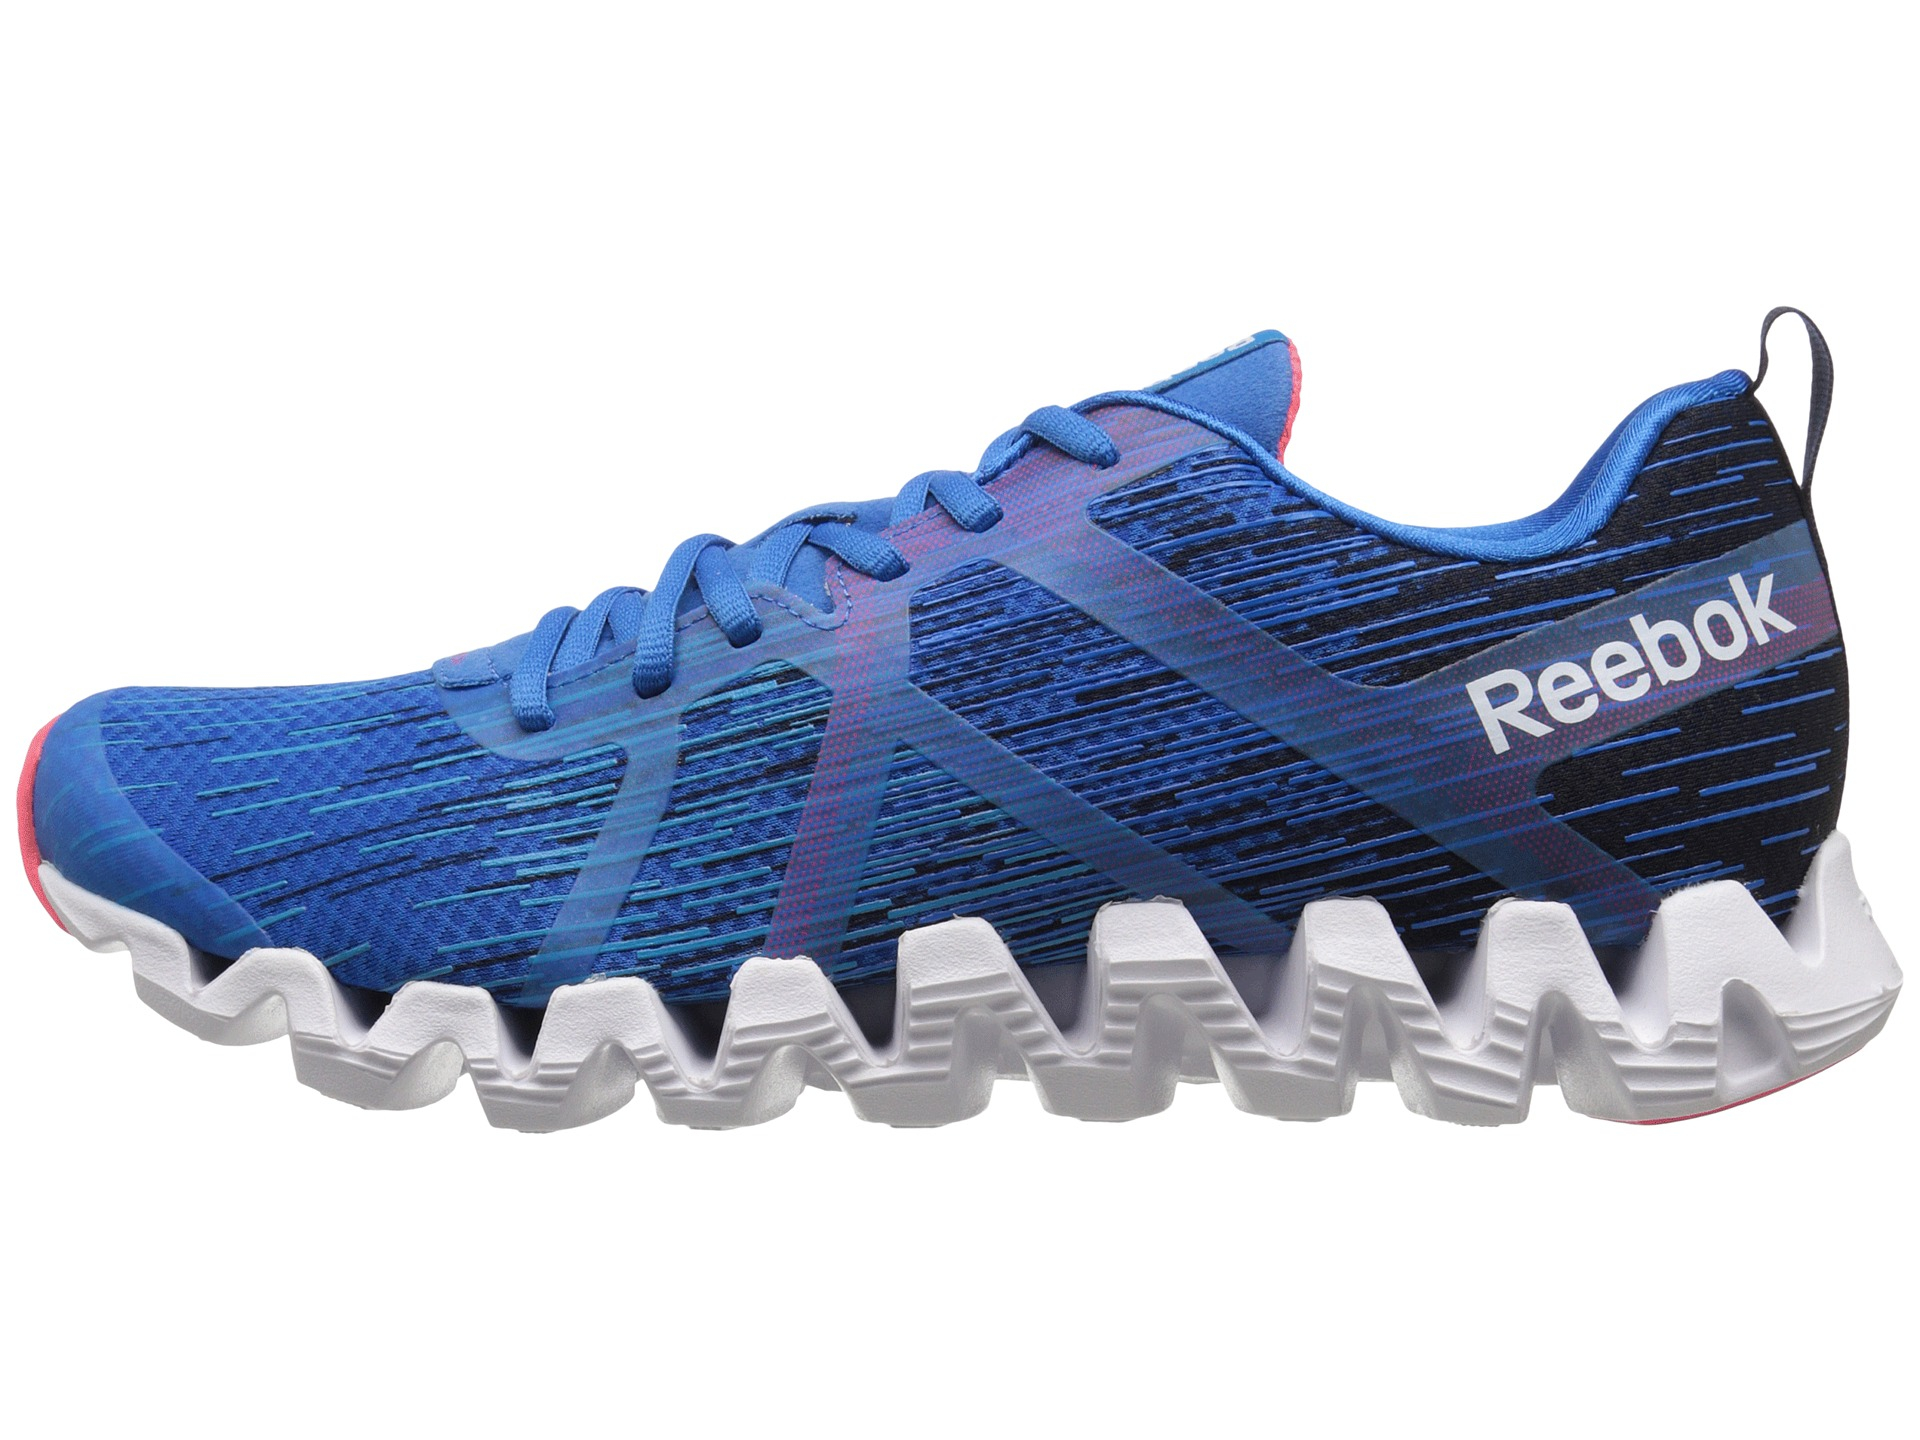 finest selection 12ffc 27dec Reebok Zigtech Squared 2.0 in Blue for Men - Lyst